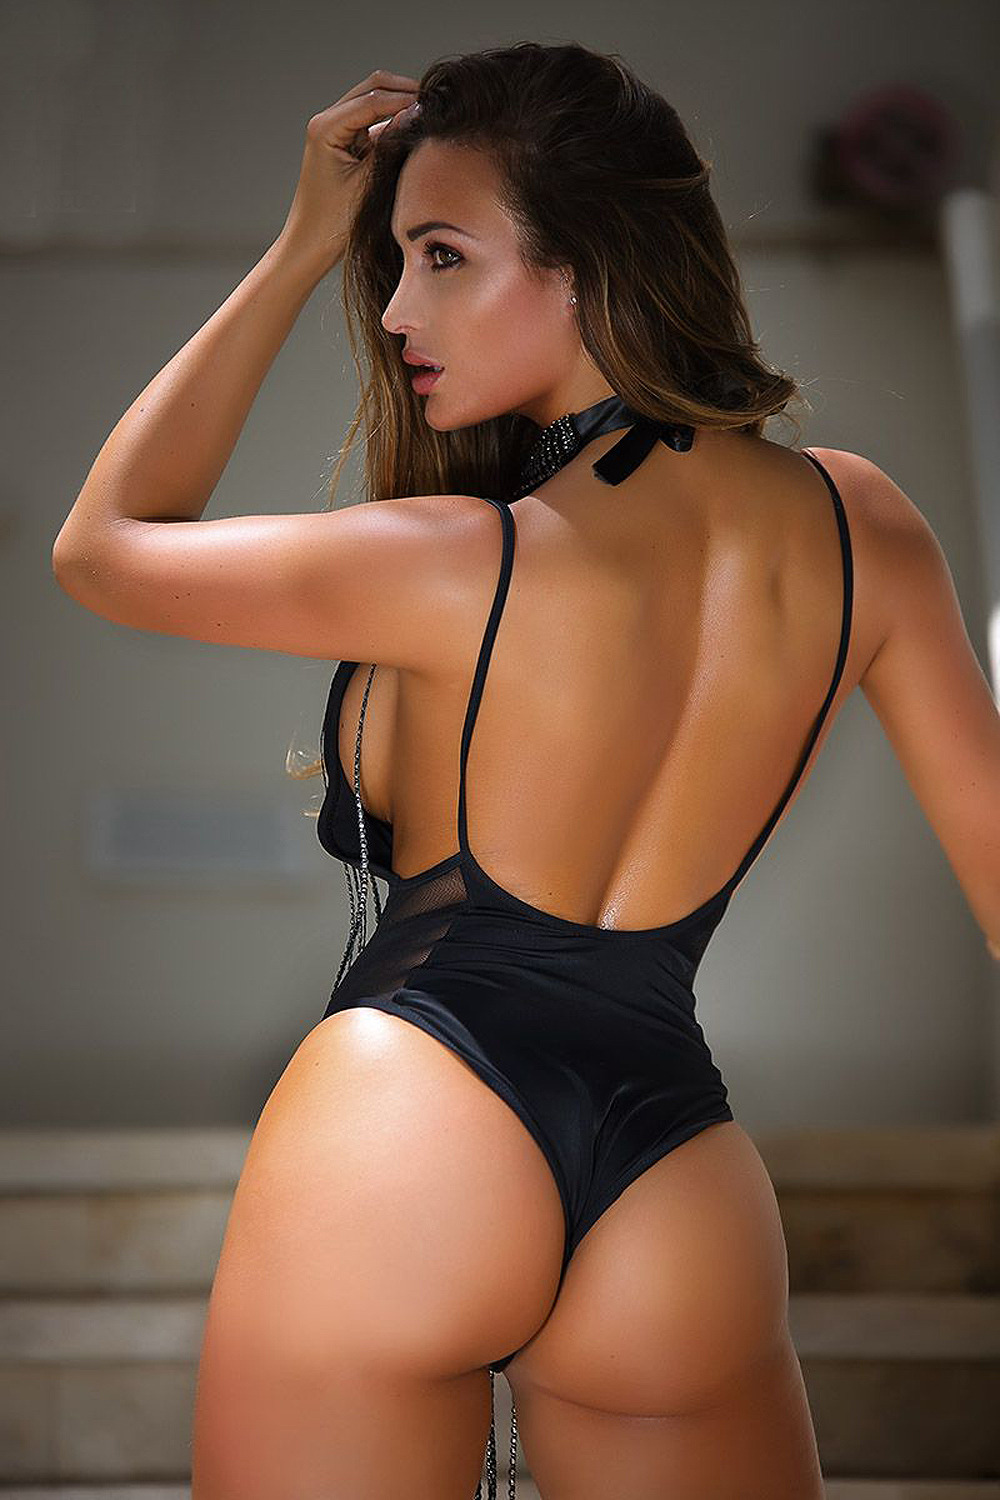 #perfect back view #perfect back view #perfect body#beautiful models#beautiful lingerie#stunning sexy